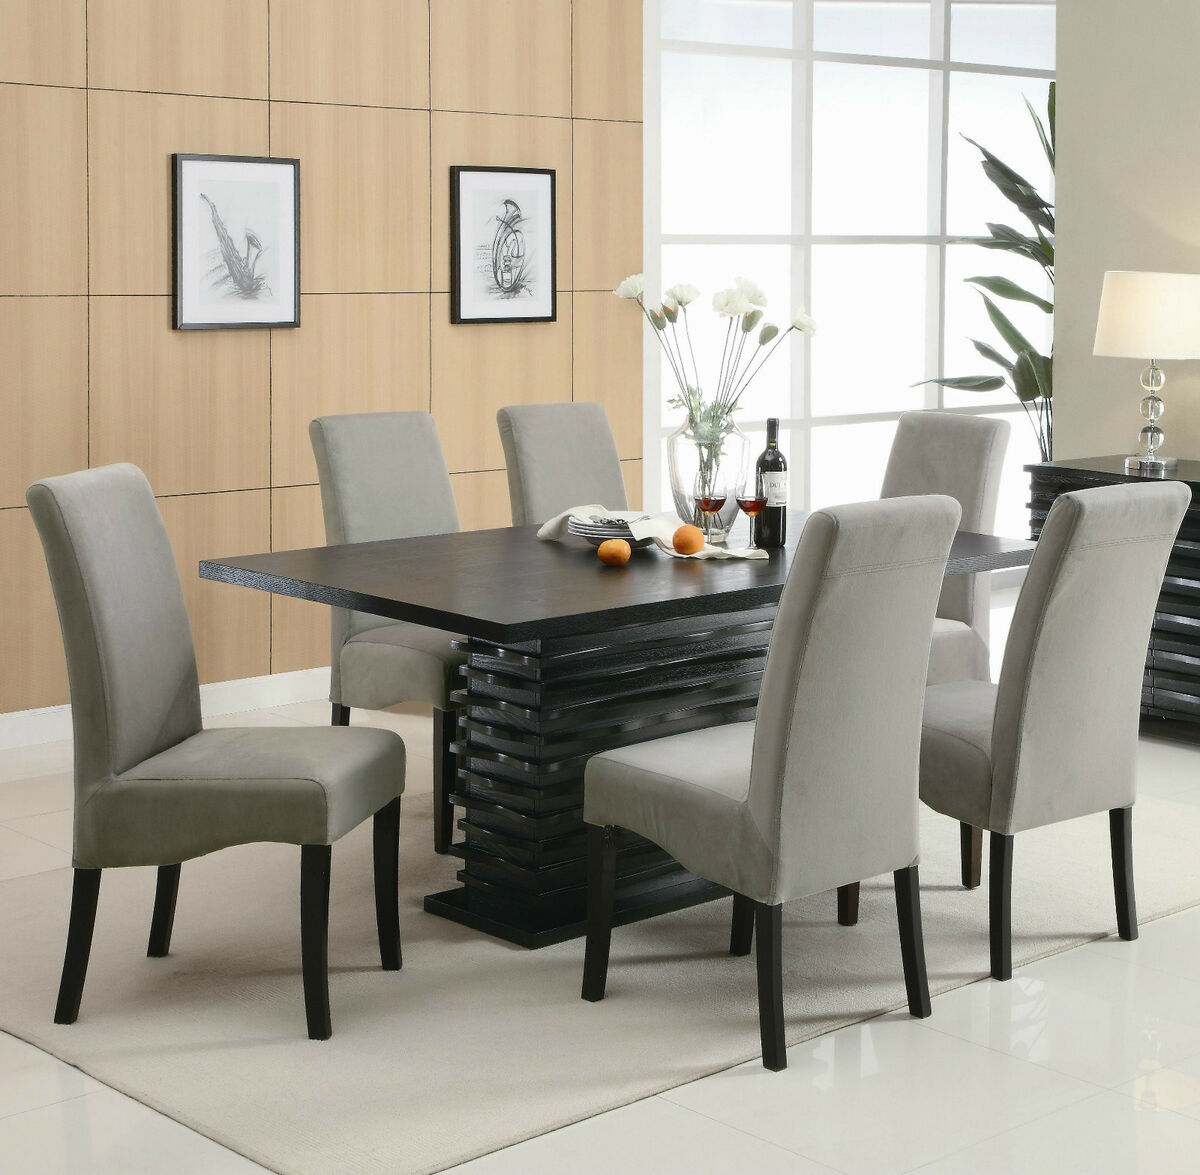 Dining table furniture contemporary dining table chairs for Modern dining room chairs